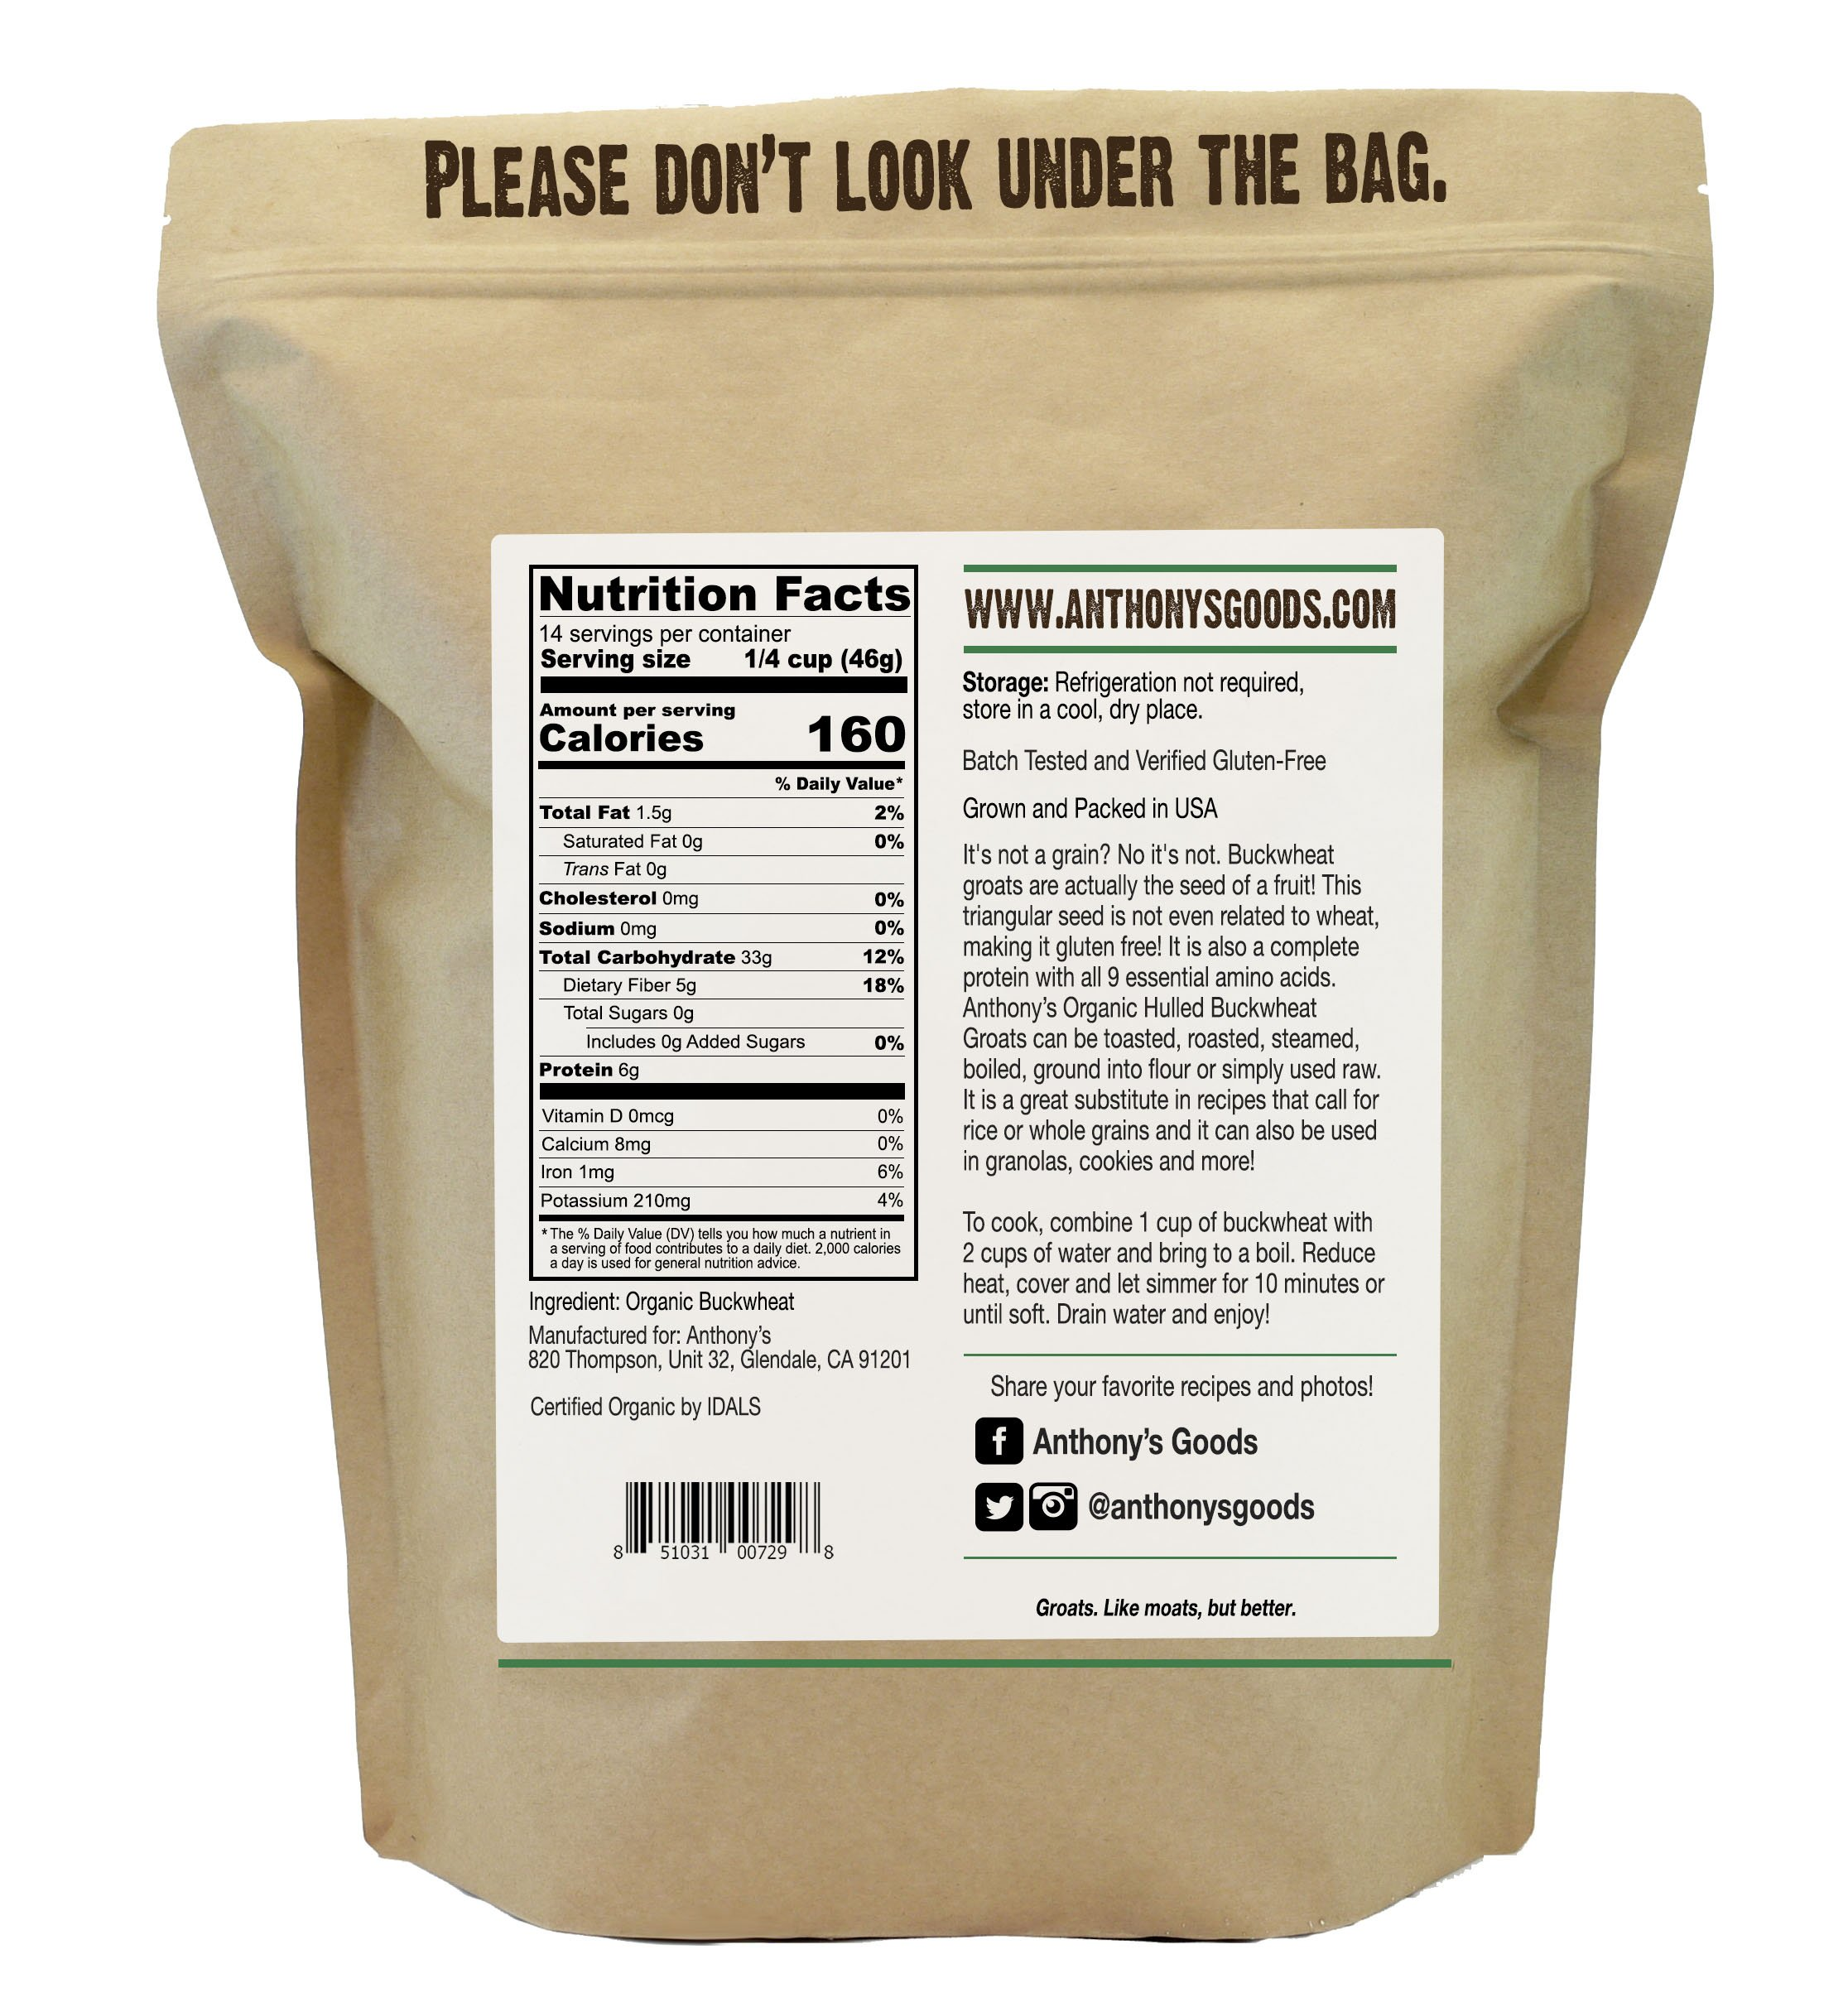 Anthony's Organic Hulled Buckwheat Groats (1.5lb), Raw, Grown in USA, Gluten-Free by Anthony's (Image #1)